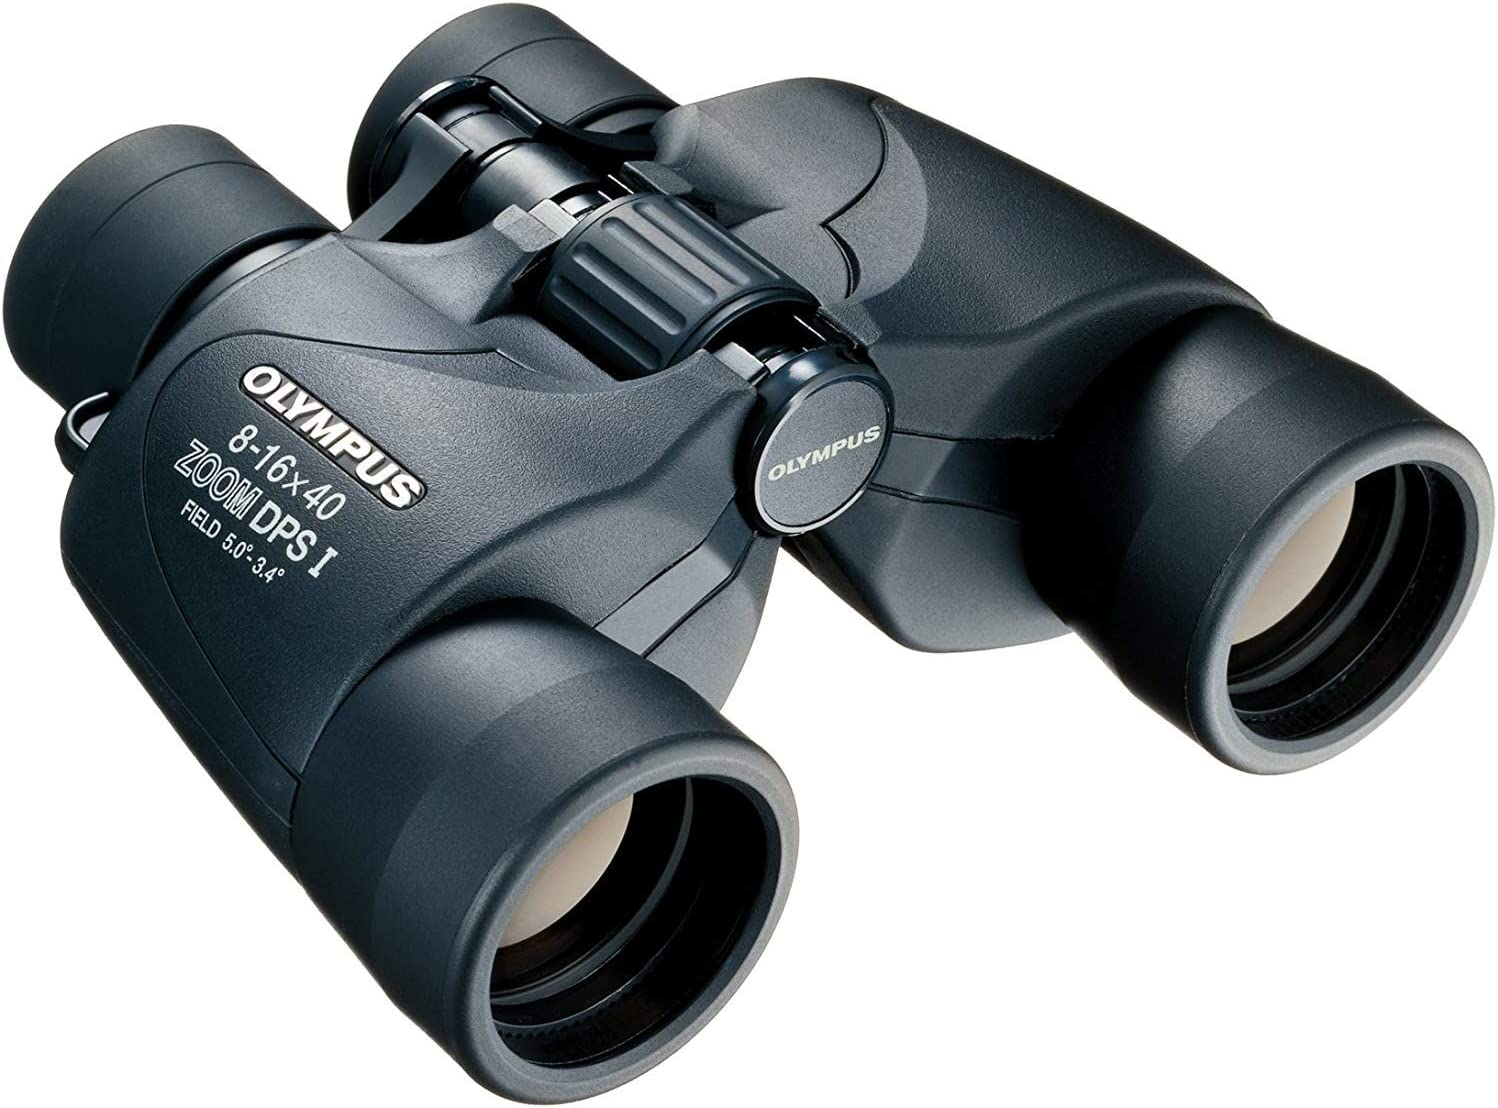 7X35 DPS I Compatible with Olympus 10X50 DPS I 8-16X40 Zoom DPS I Binoculars 8X40 DPS I DURAGADGET Large Padded Double-Zip Holdal Case with Adjustable Shoulder Strap